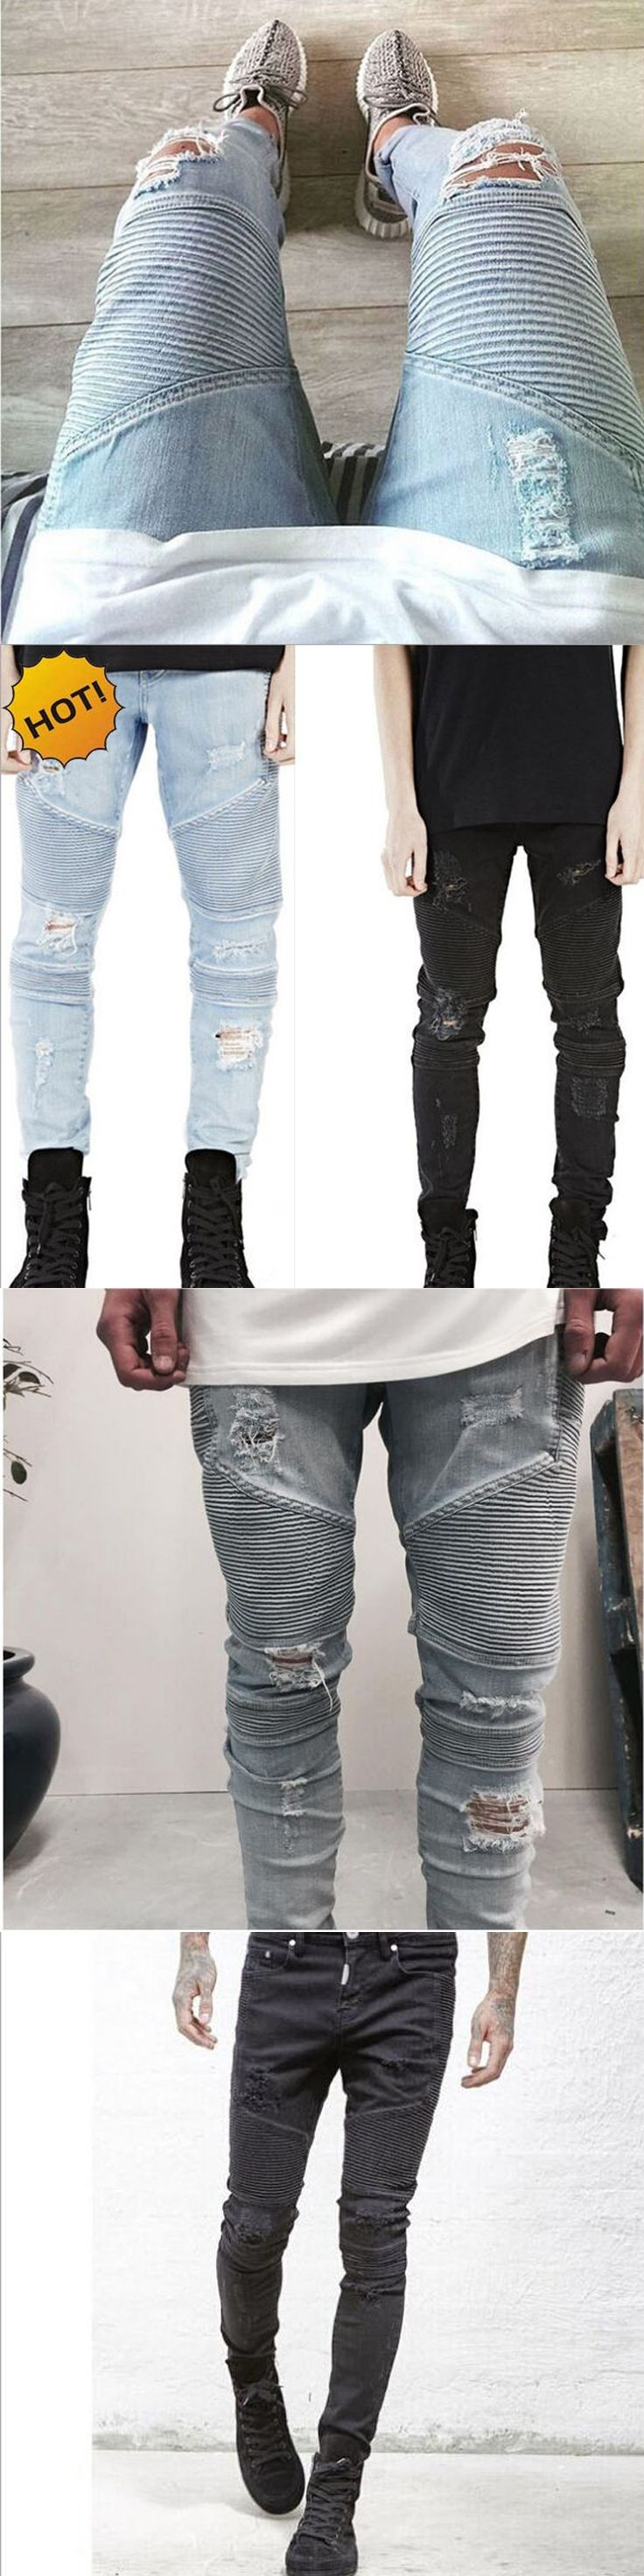 Hot 2017 Hip Hop Hole Ripped Jeans Men Fashion Pleated Runway Distressed Biker Boy Blue/Black Motorcycle Trousers Bottoms 28-40